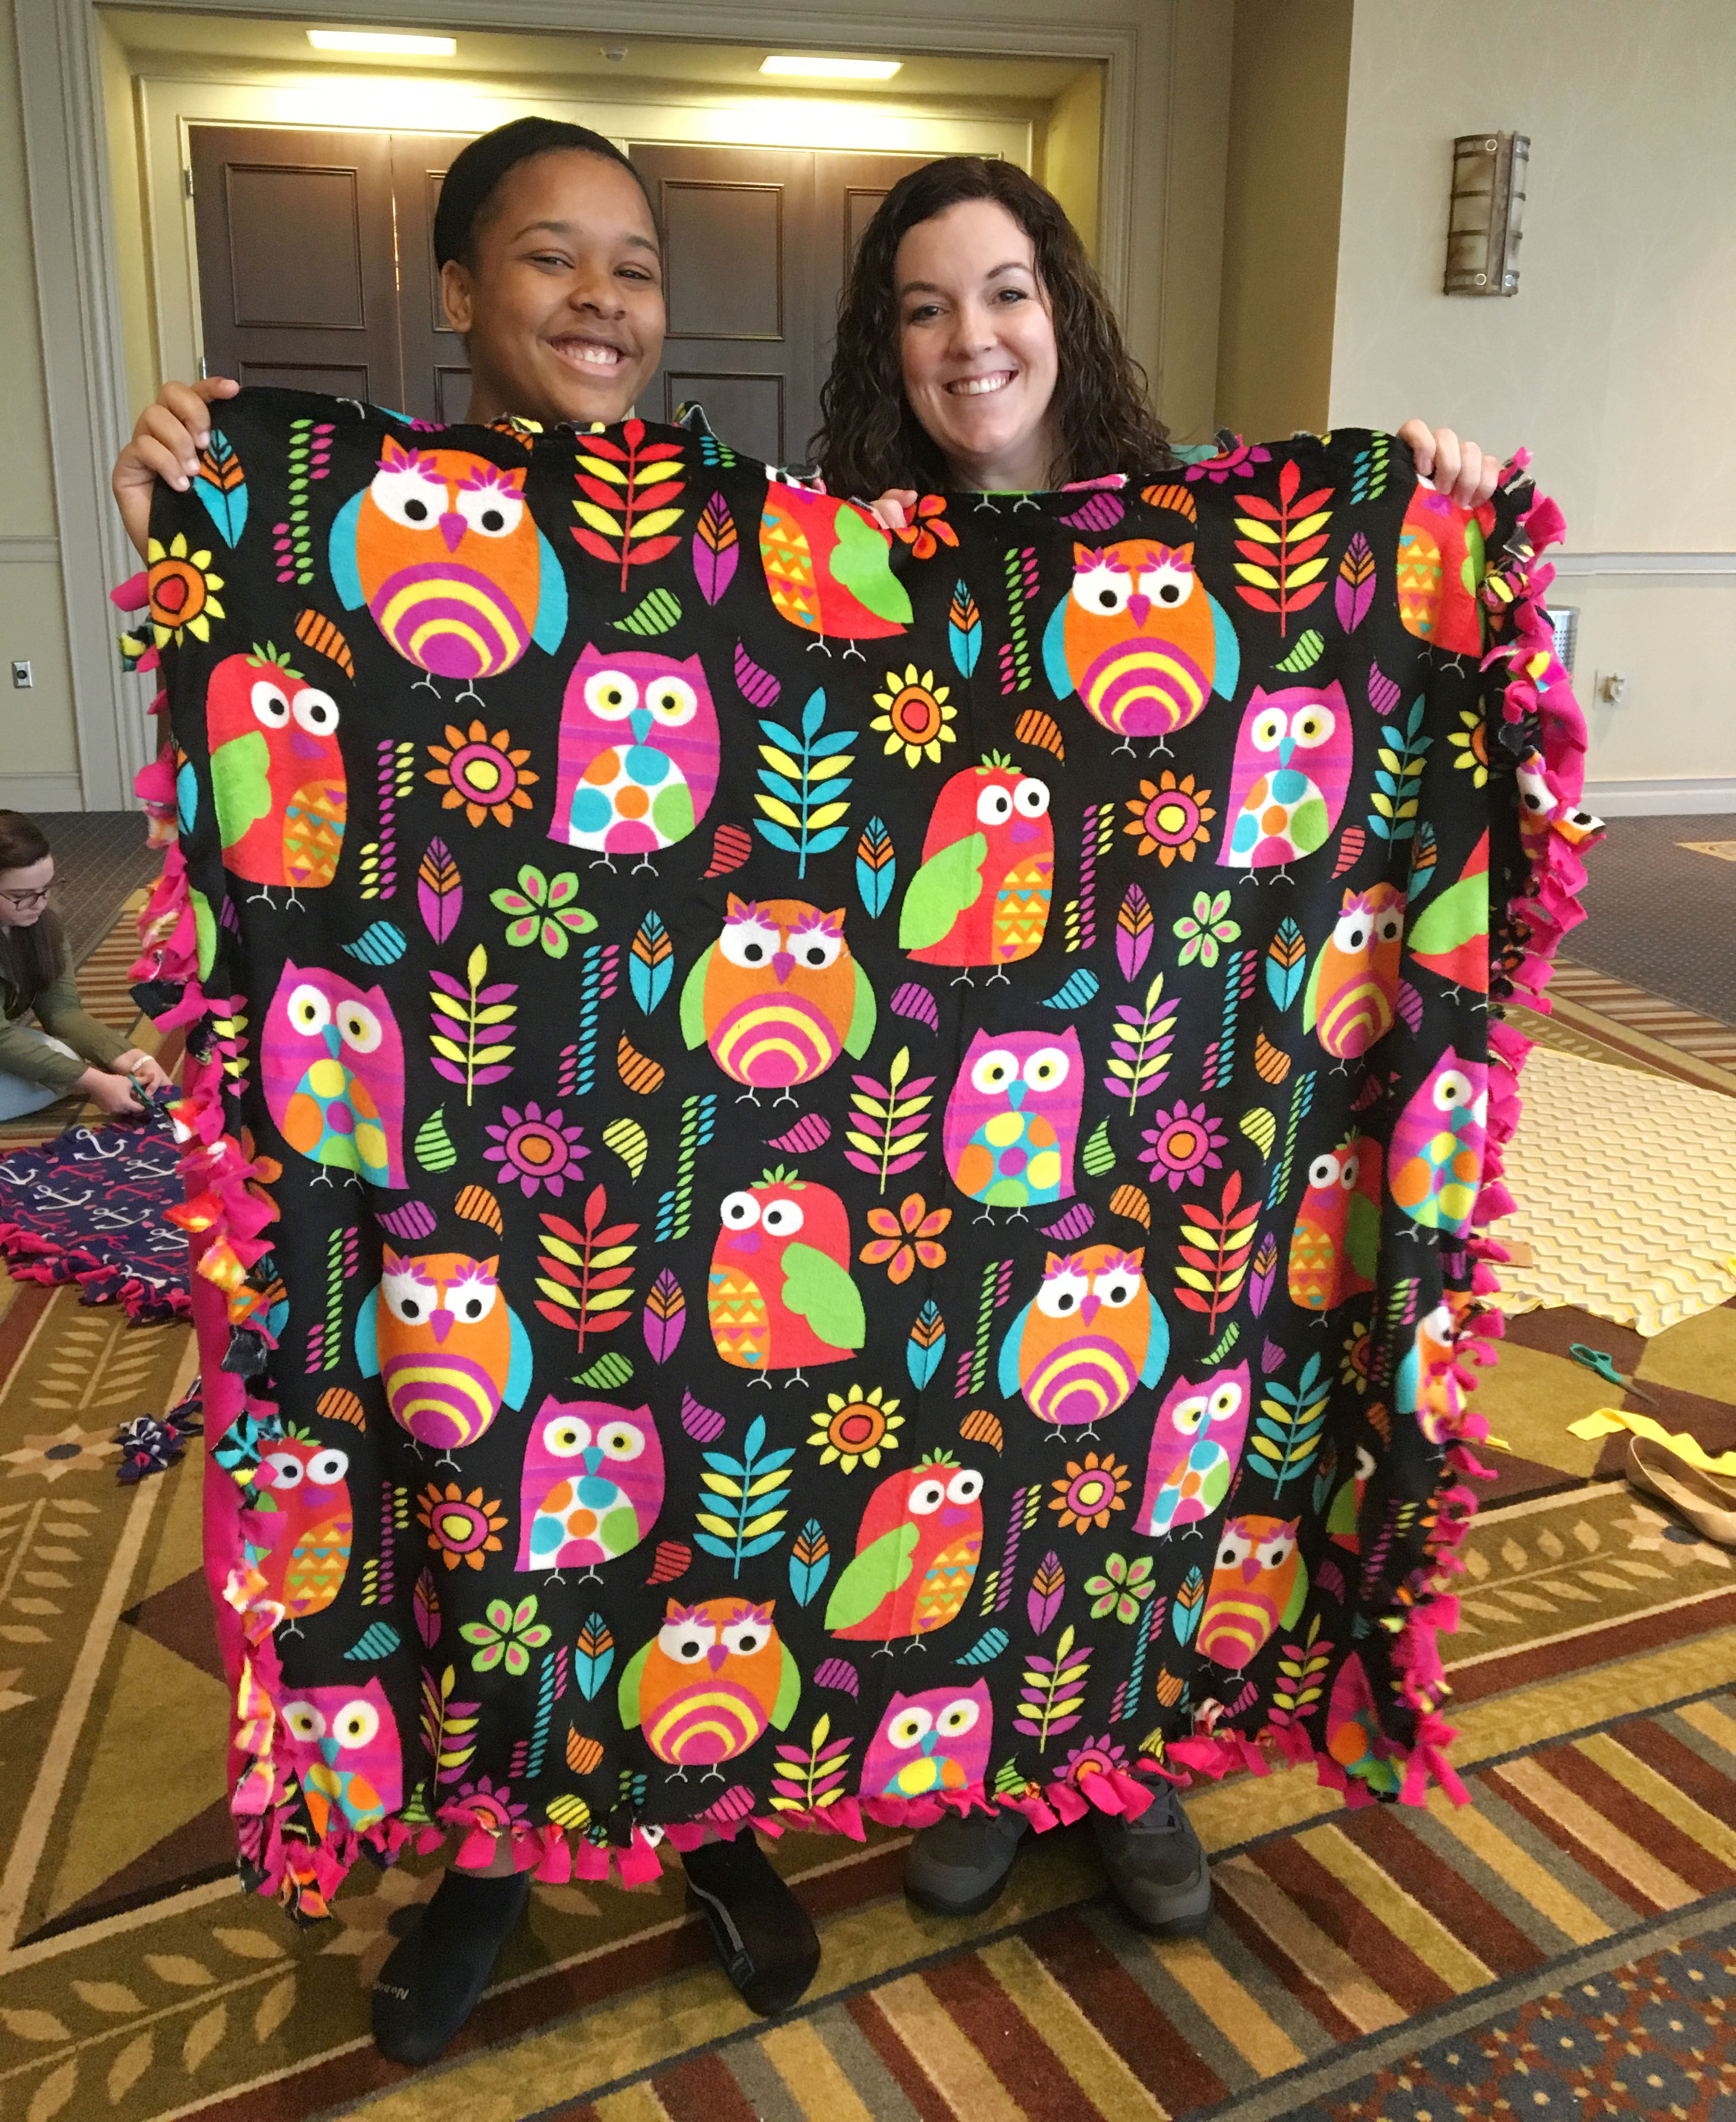 CHS junior Kayla Young, at left, and Beta sponsor Lindsay Williams hold a blanket they made as part of a service project for children.